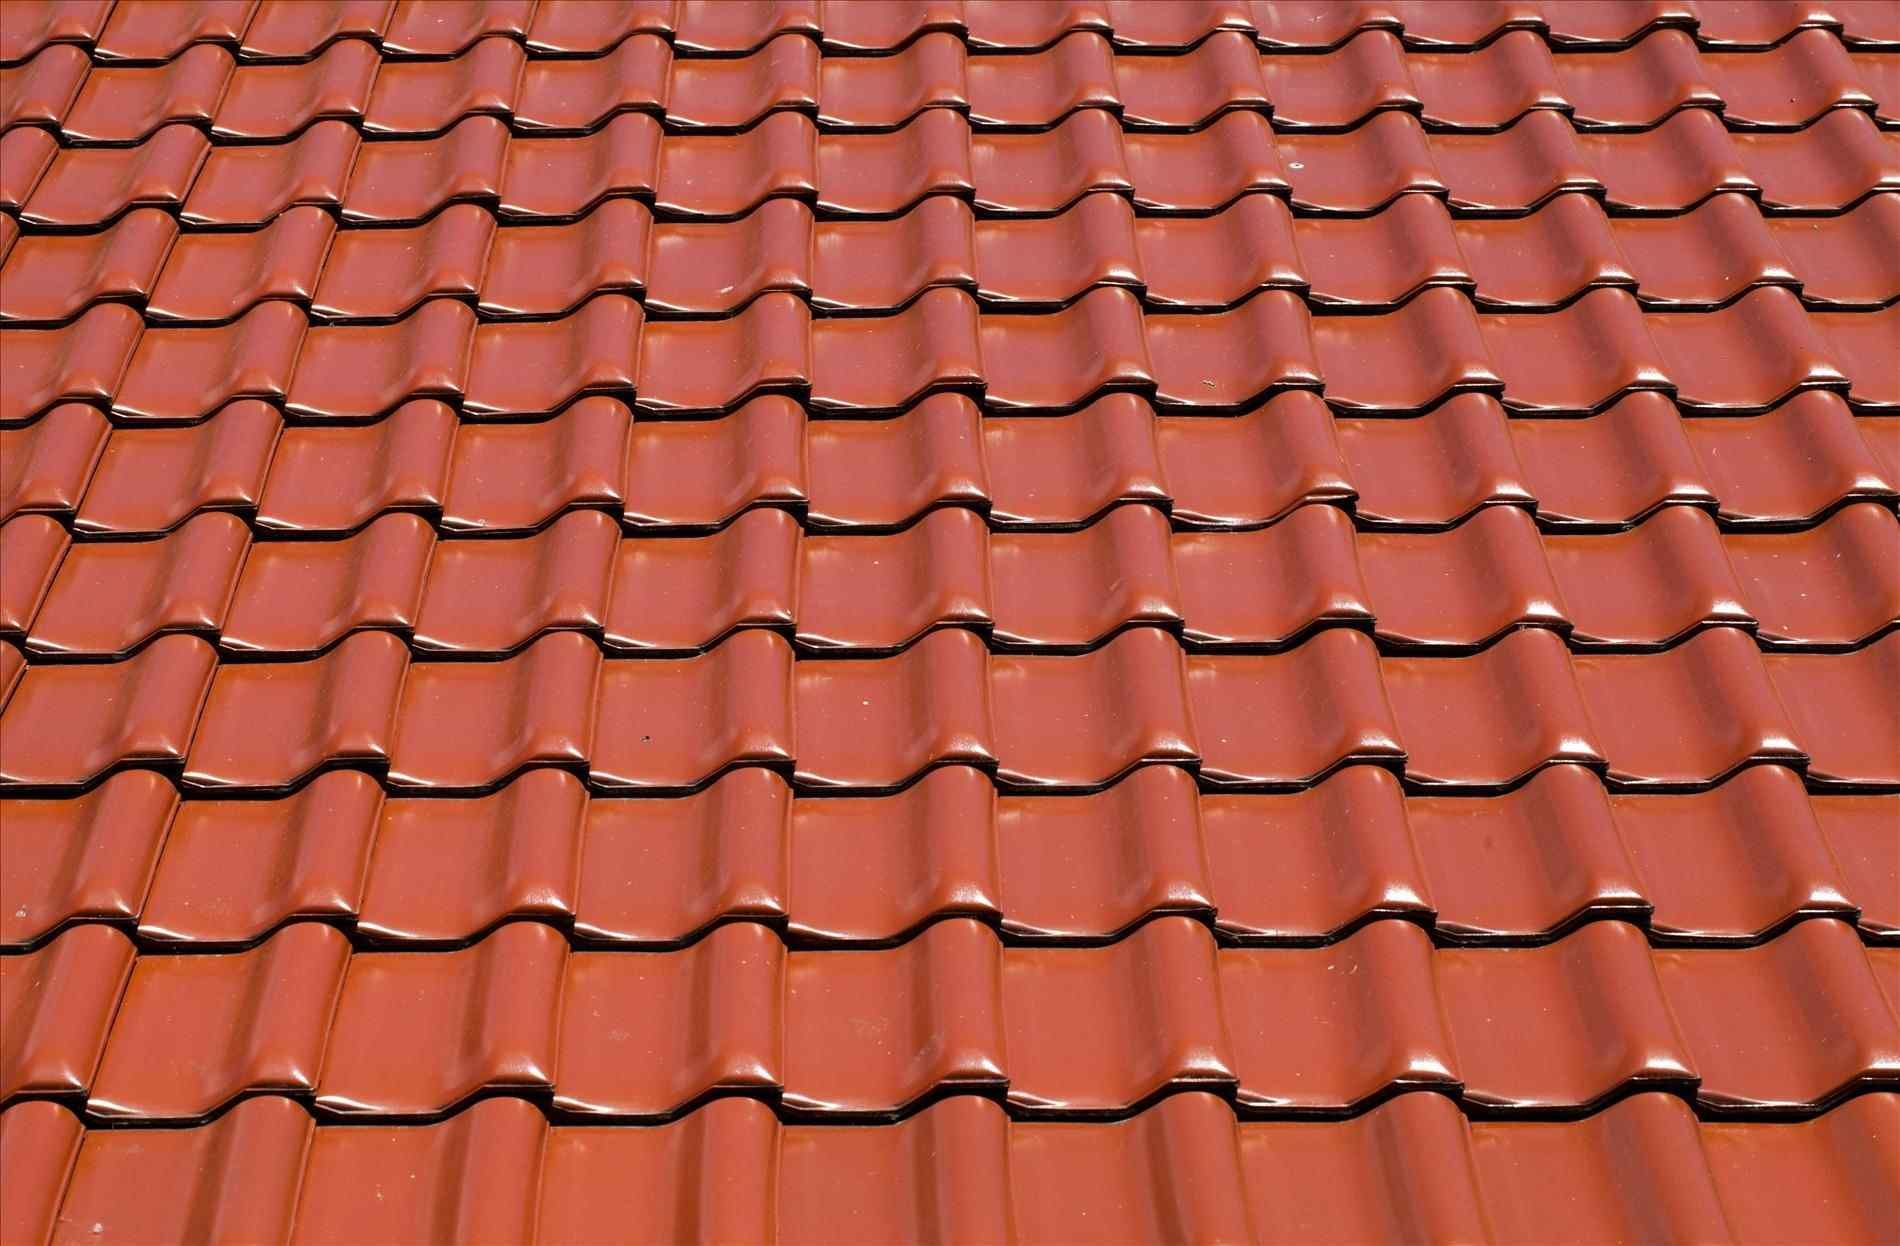 Types Of Asphalt Roof Shingles Home Roof Ideas Asphalt Roof